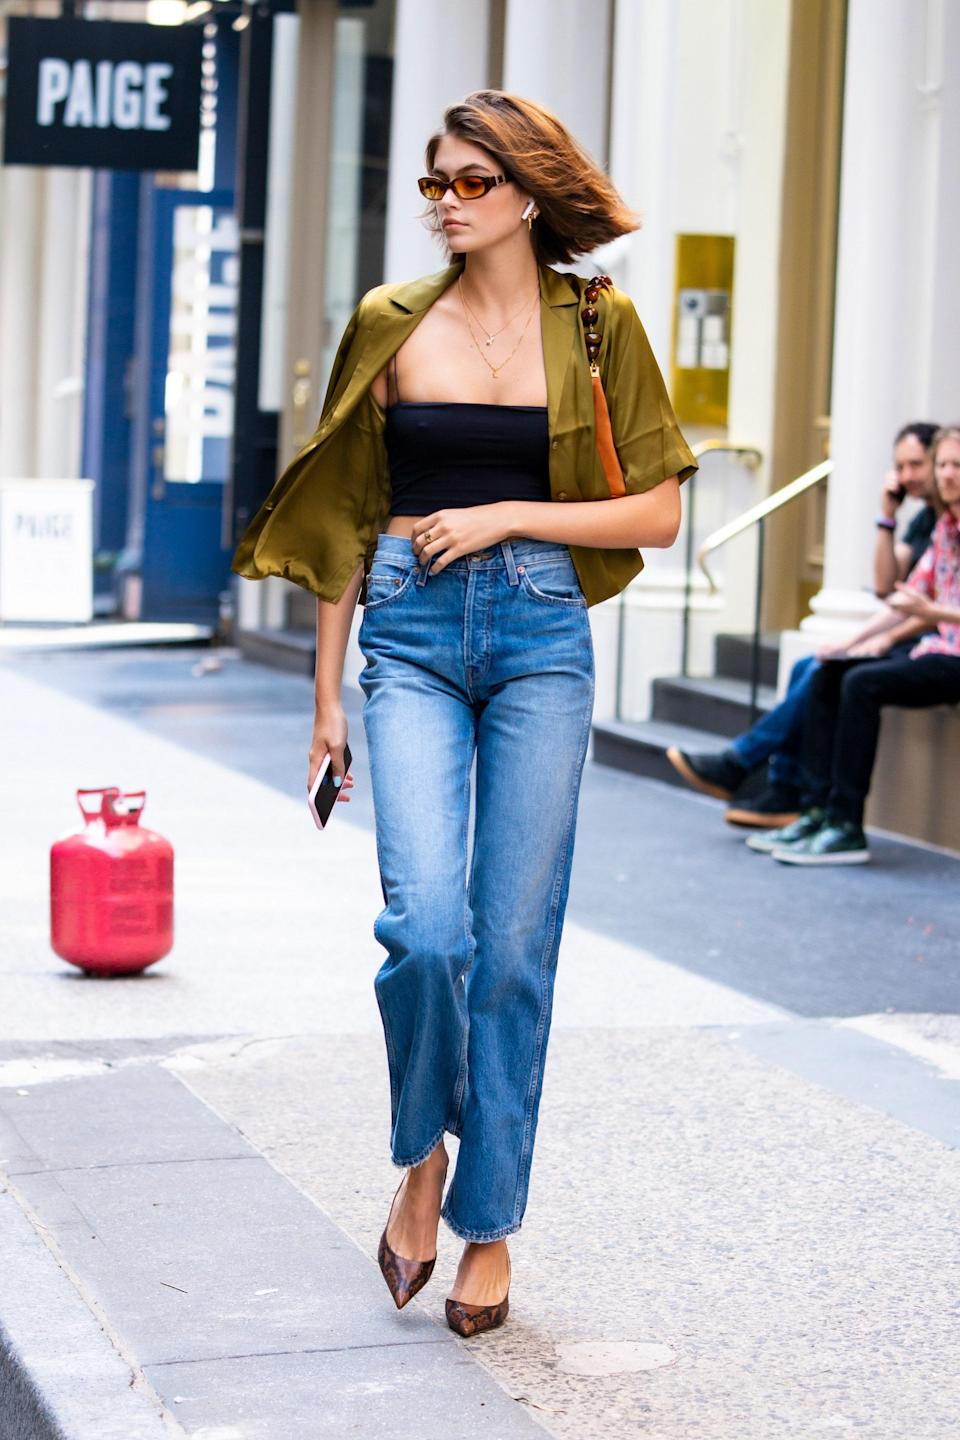 Summer looks in the city call for sandals and breezy tops.